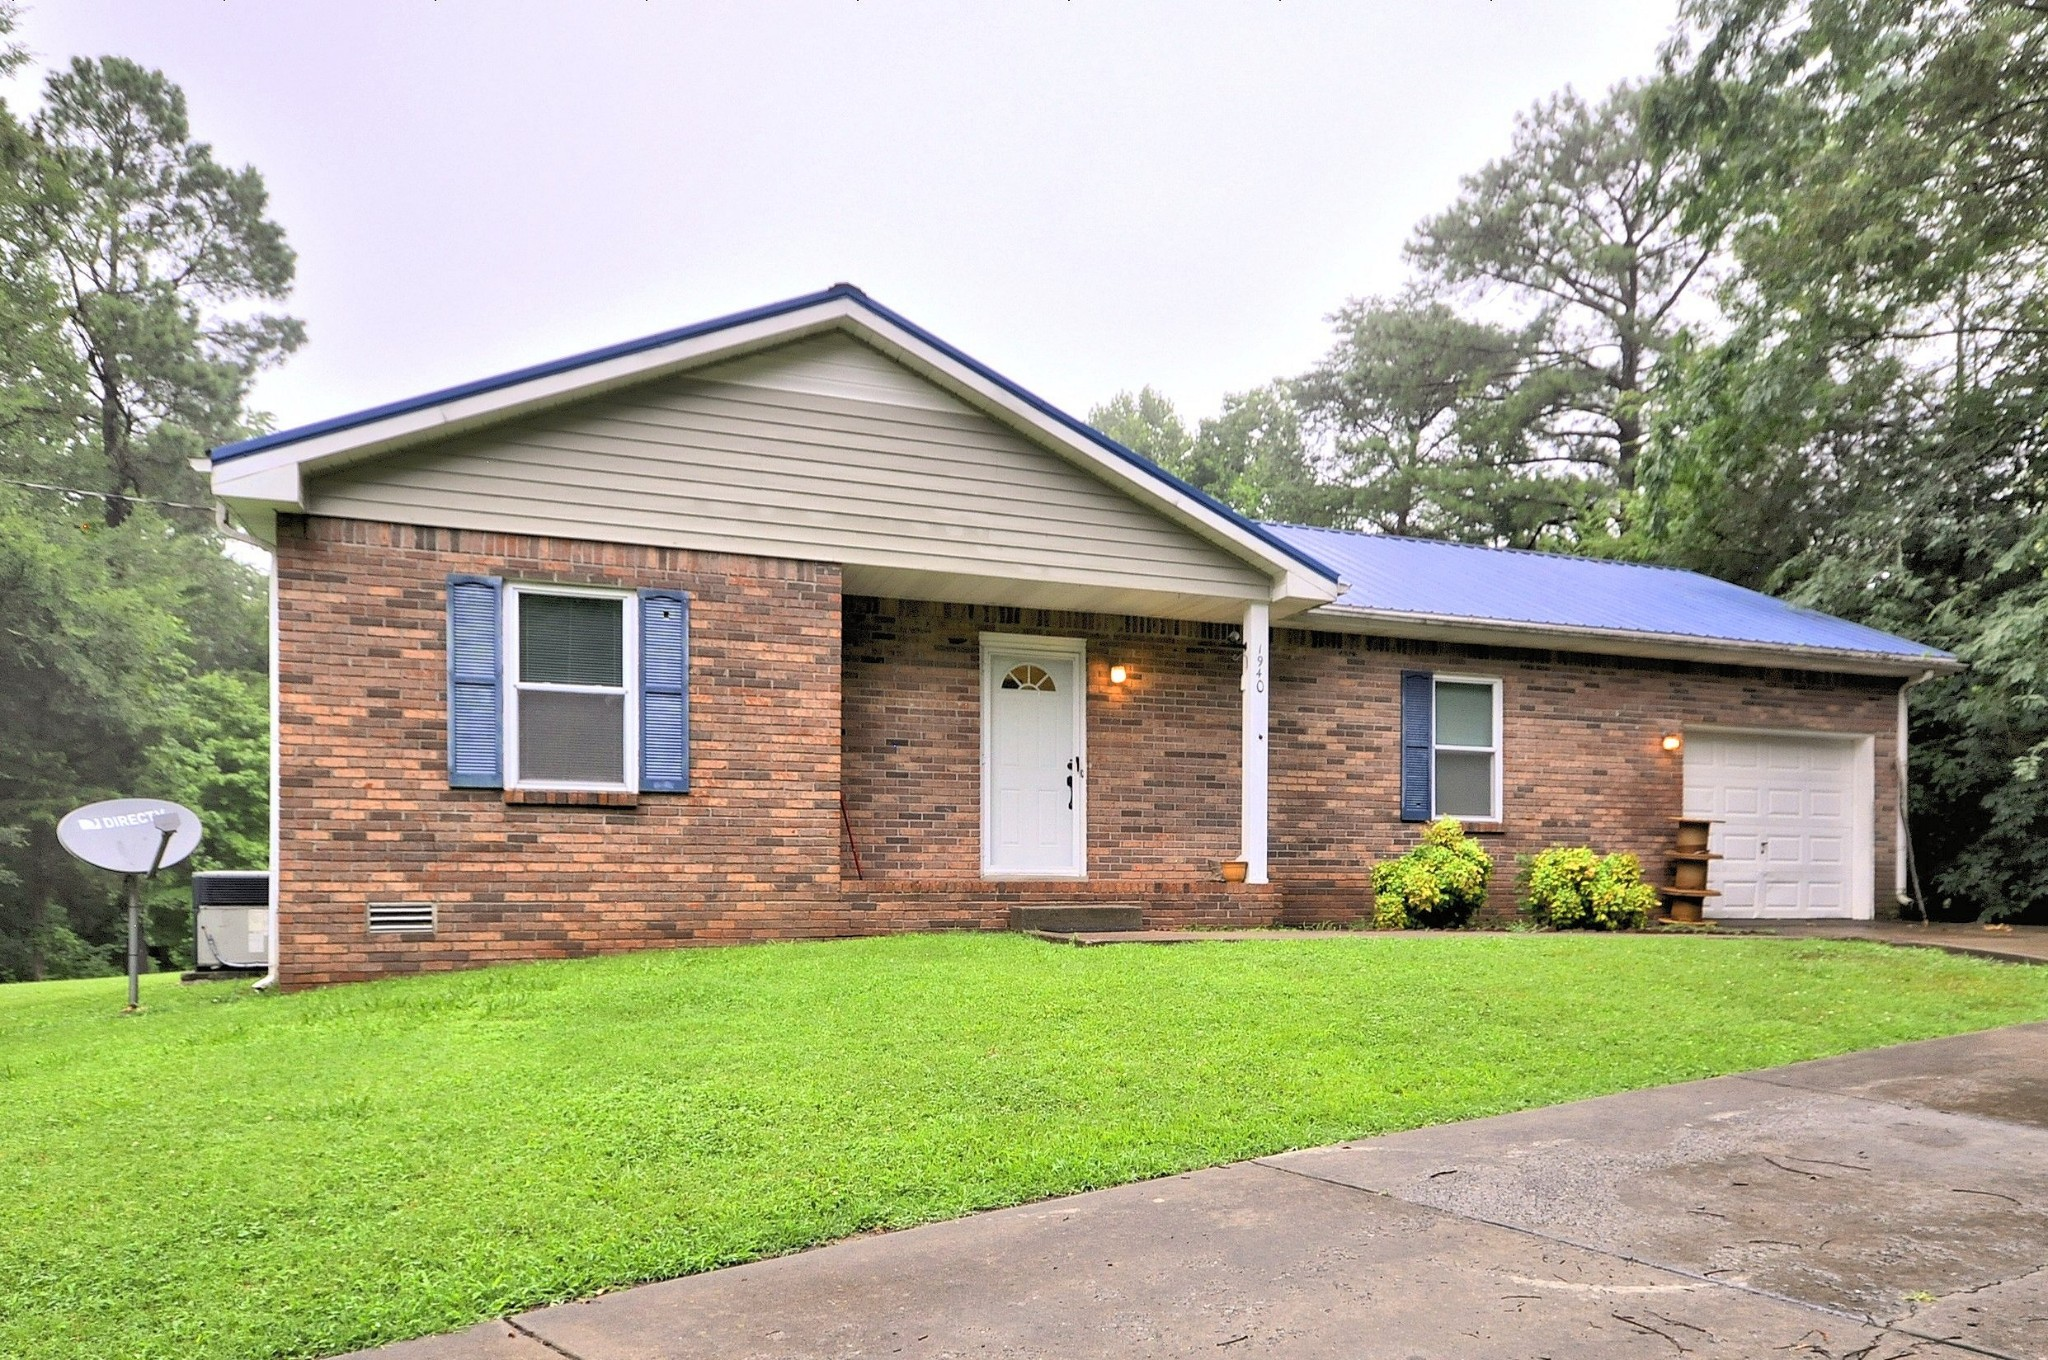 1940 CHESTER HARRIS RD Property Photo - Woodlawn, TN real estate listing